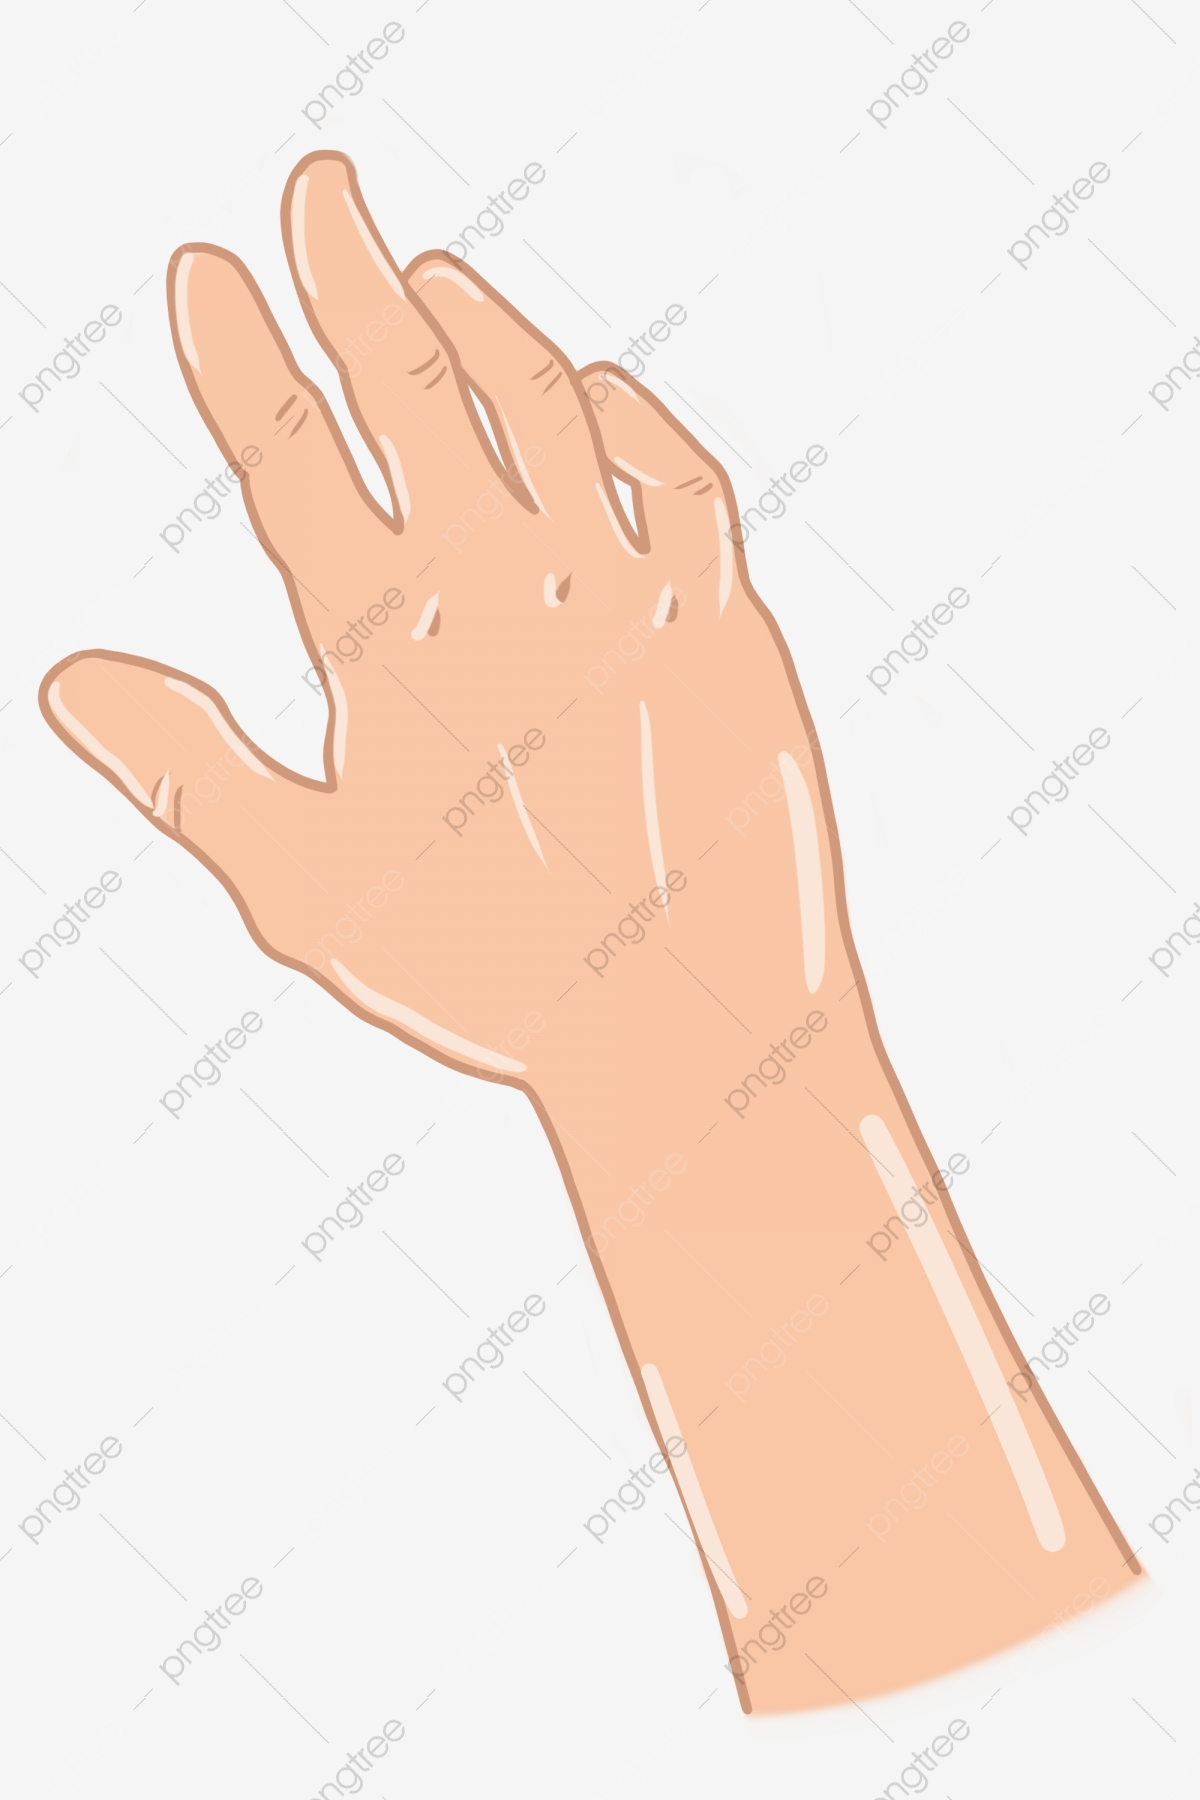 Cartoon Hand Reaching Out The Palm Reach Out Gesture Finger Png Transparent Clipart Image And Psd File For Free Download